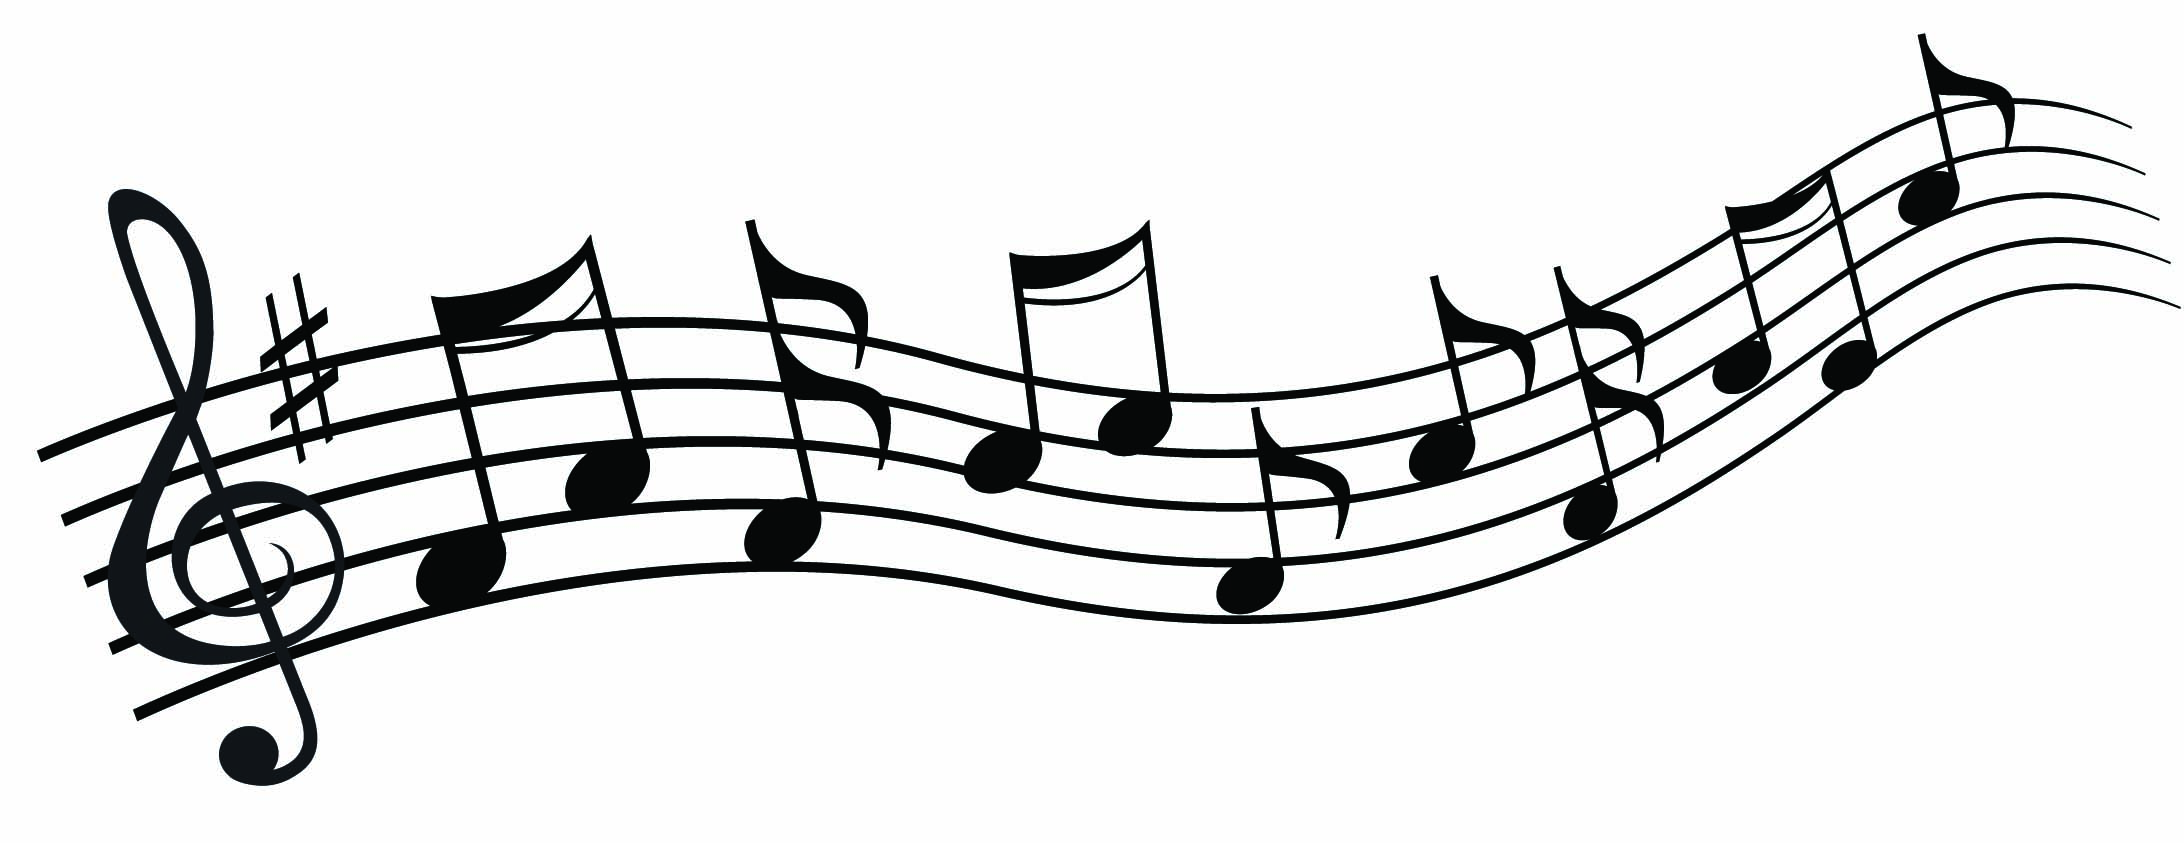 2184x843 Music Black And White Music Notes Clipart Black And White Cliparts